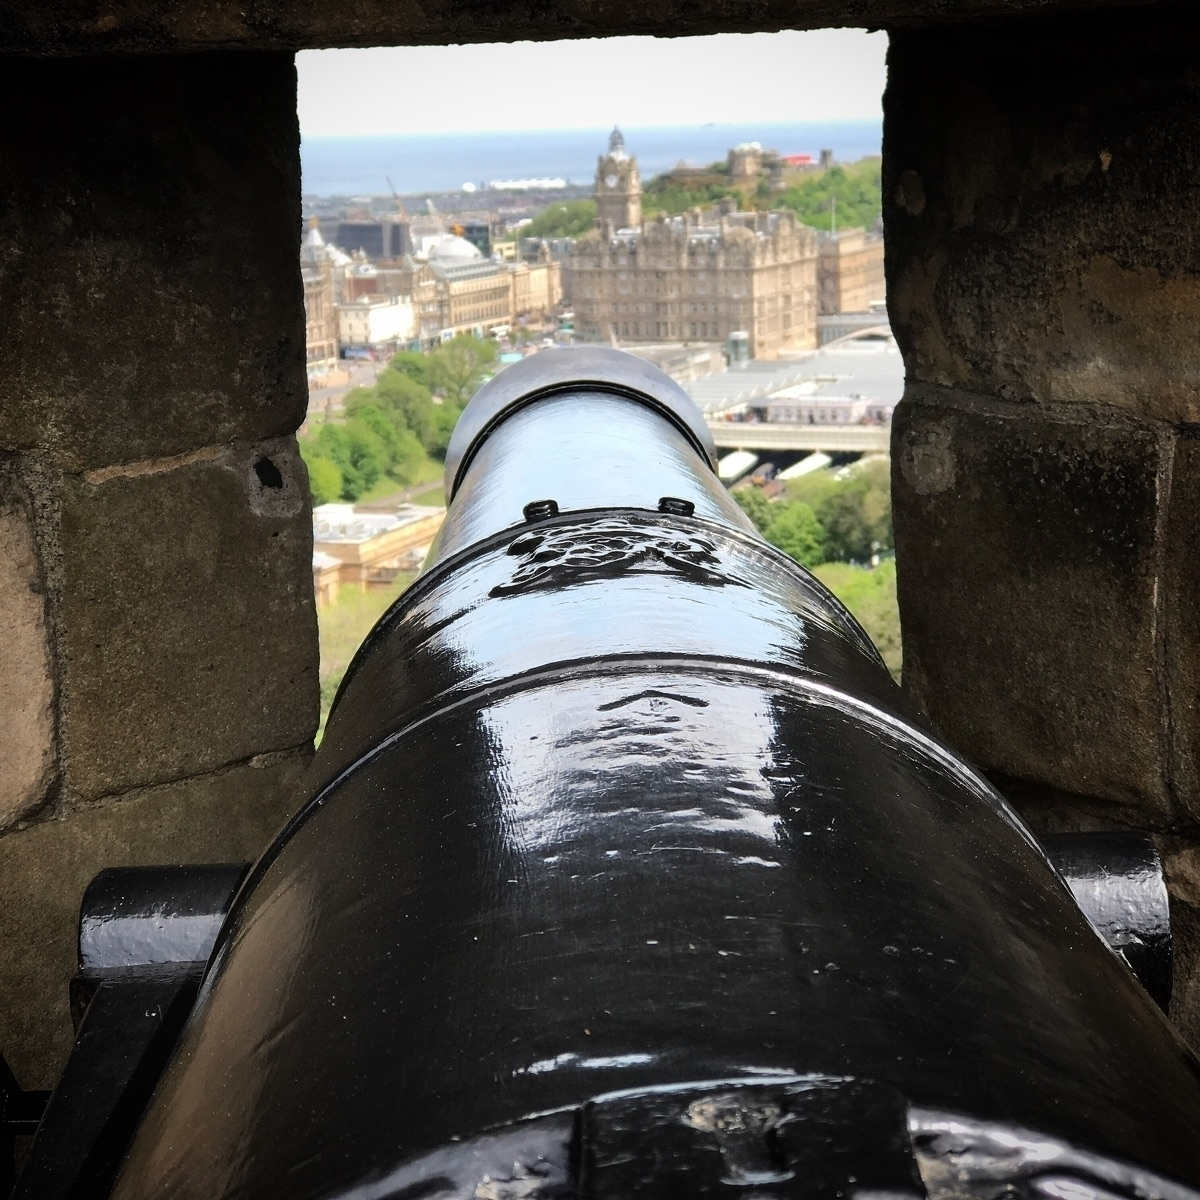 Aiming Edinburgh  - chrispersaud - chrispersaud | ello